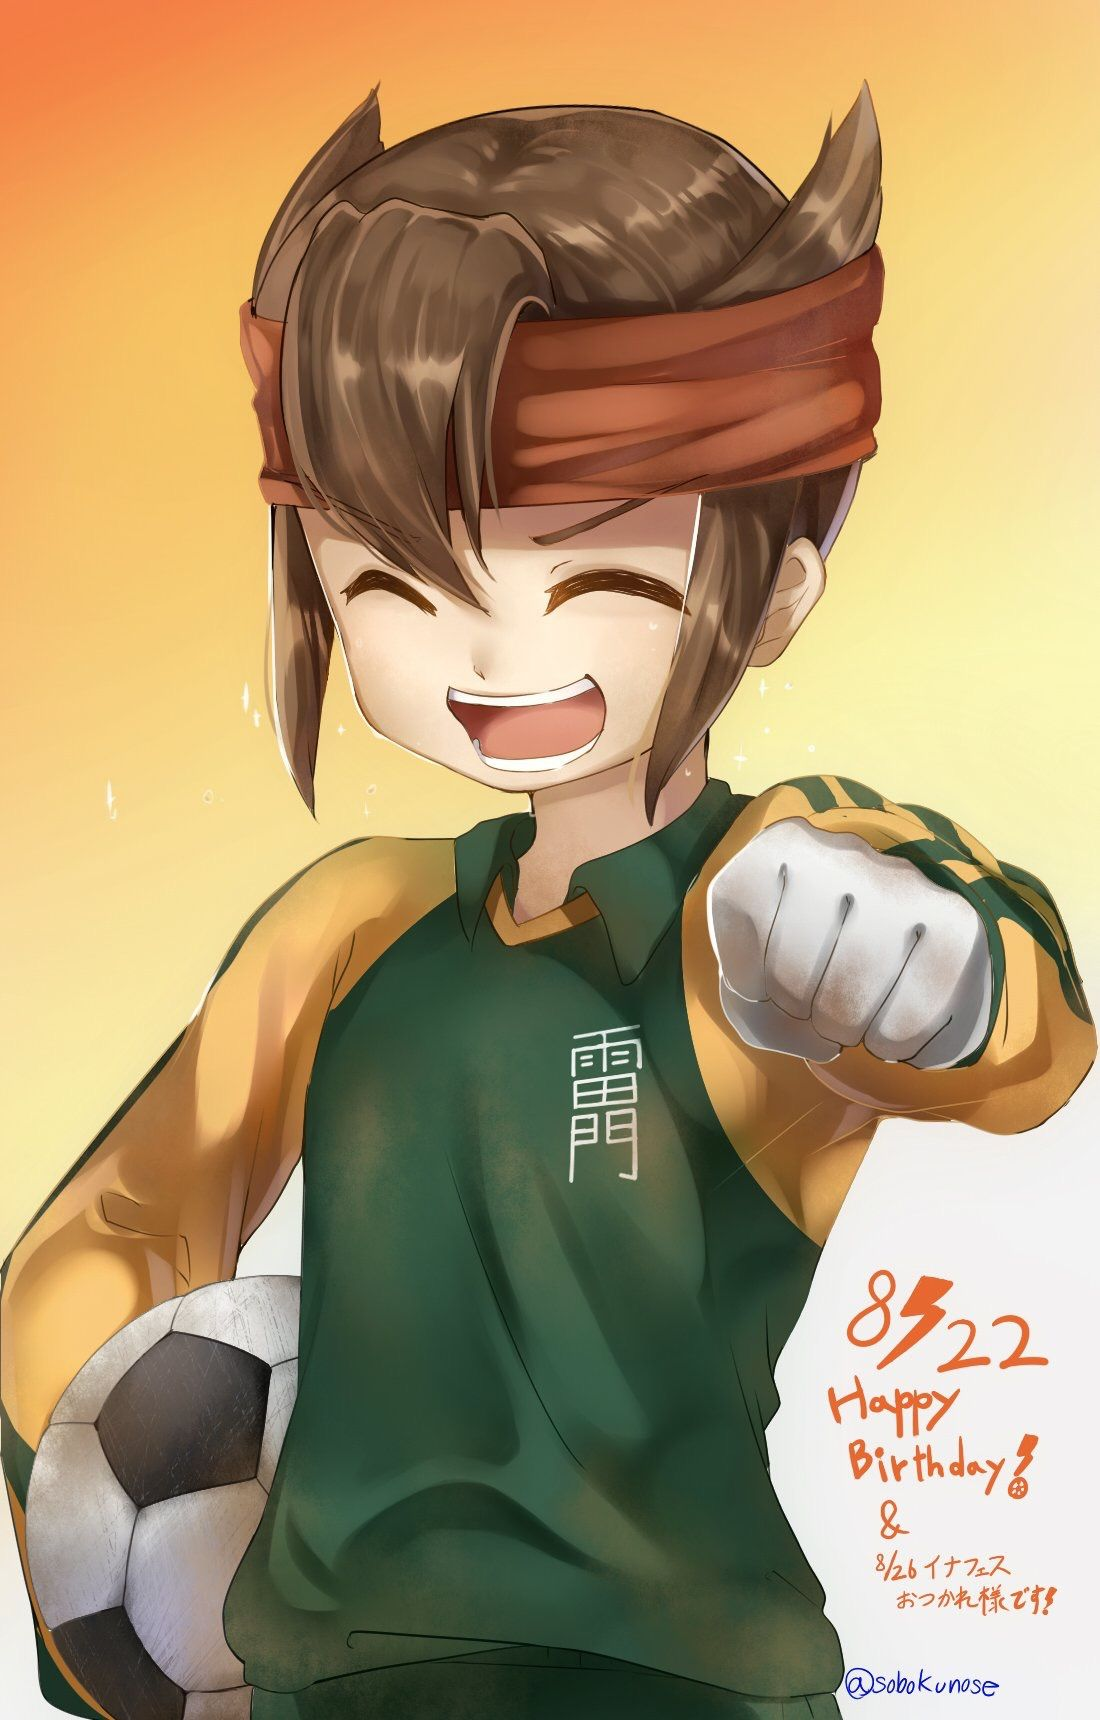 Pin by Joud on Endou Mamoru Eleventh, Anime, Anime images